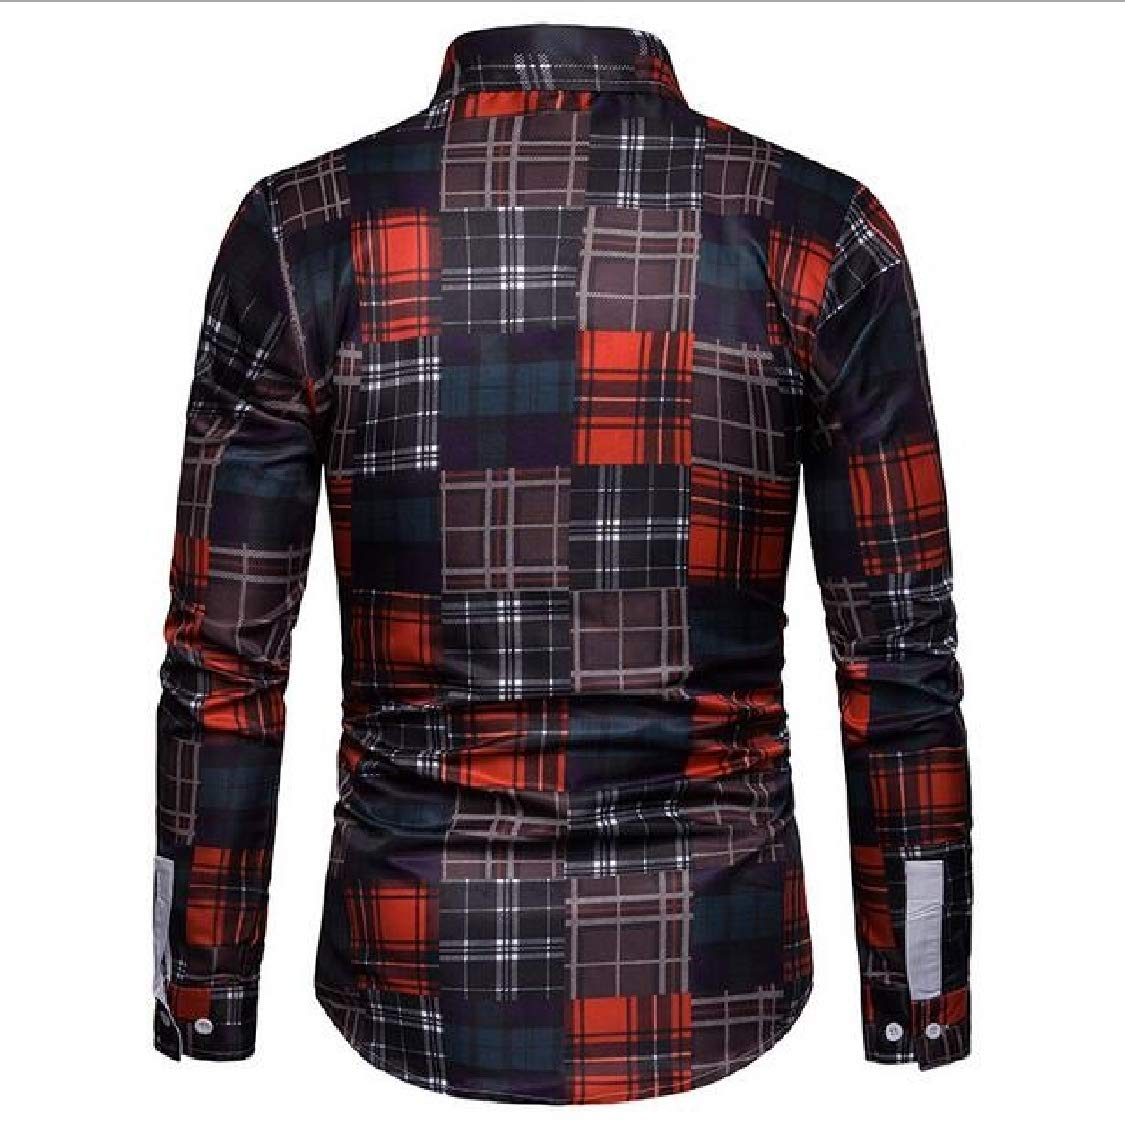 Lutratocro Men Casual Long-Sleeve Plaid Button-Down Business Shirts